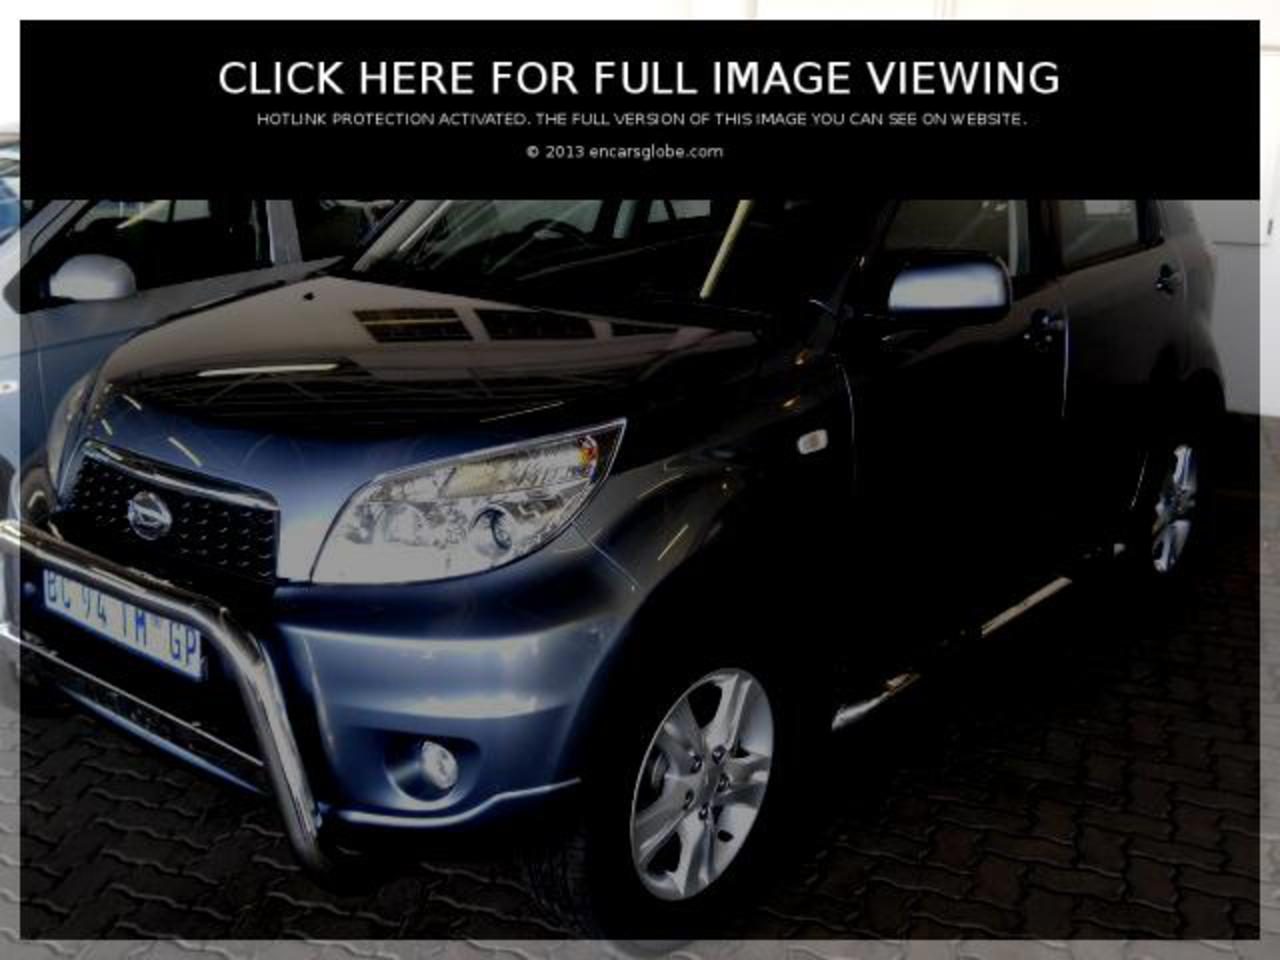 Daihatsu Terios 15 4x2: Photo gallery, complete information about ...